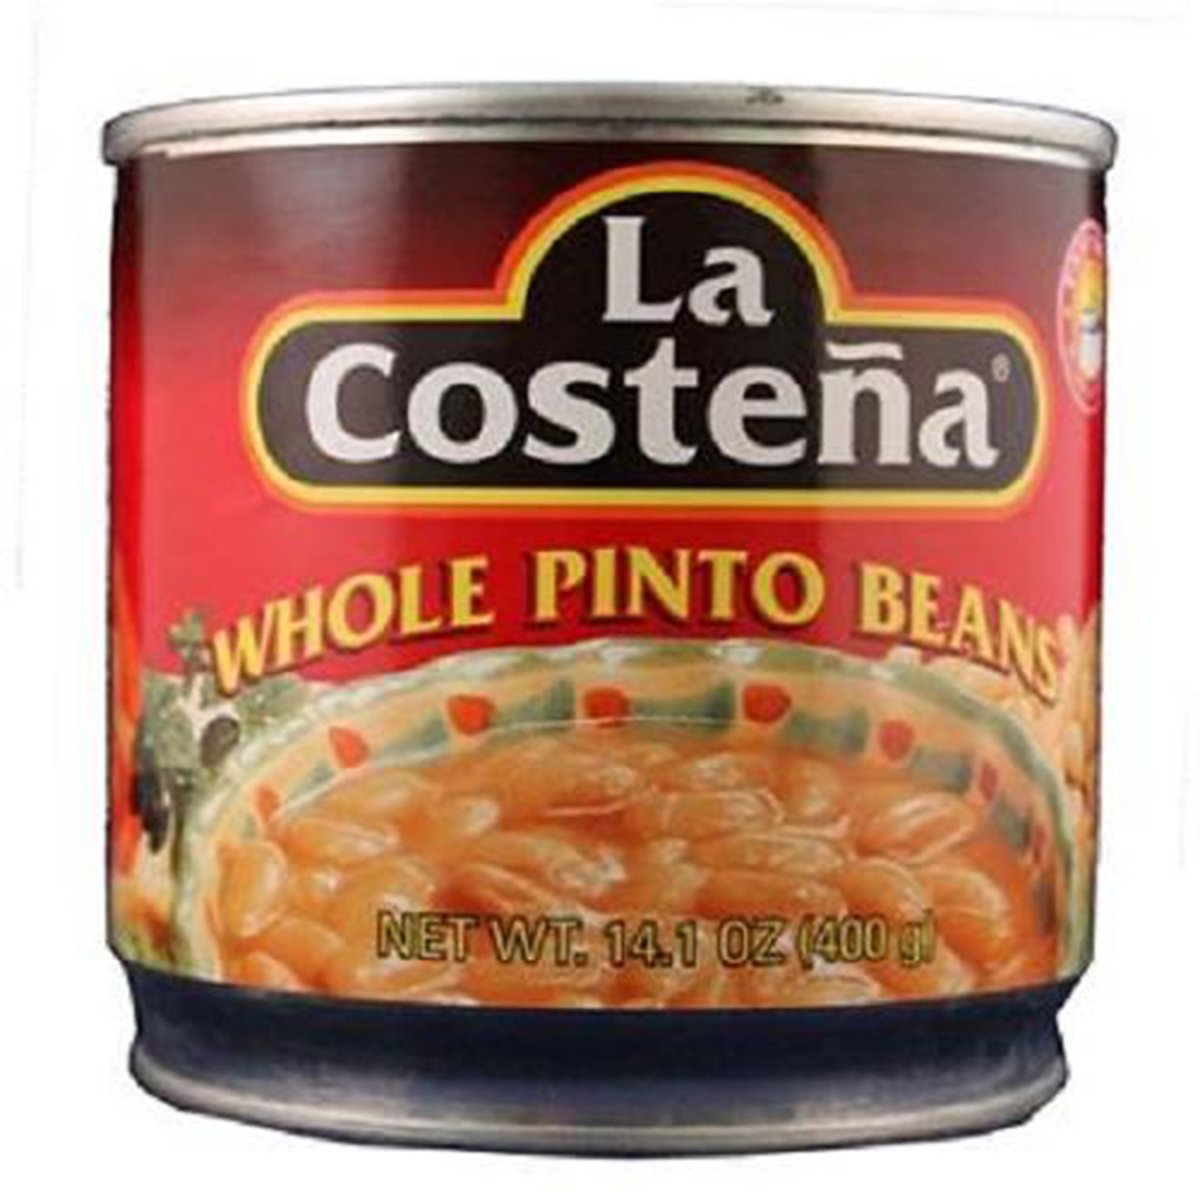 Product Of La Costena, Whole Pinto Beans, Count 1 - Mexican Food / Grab Varieties & Flavors